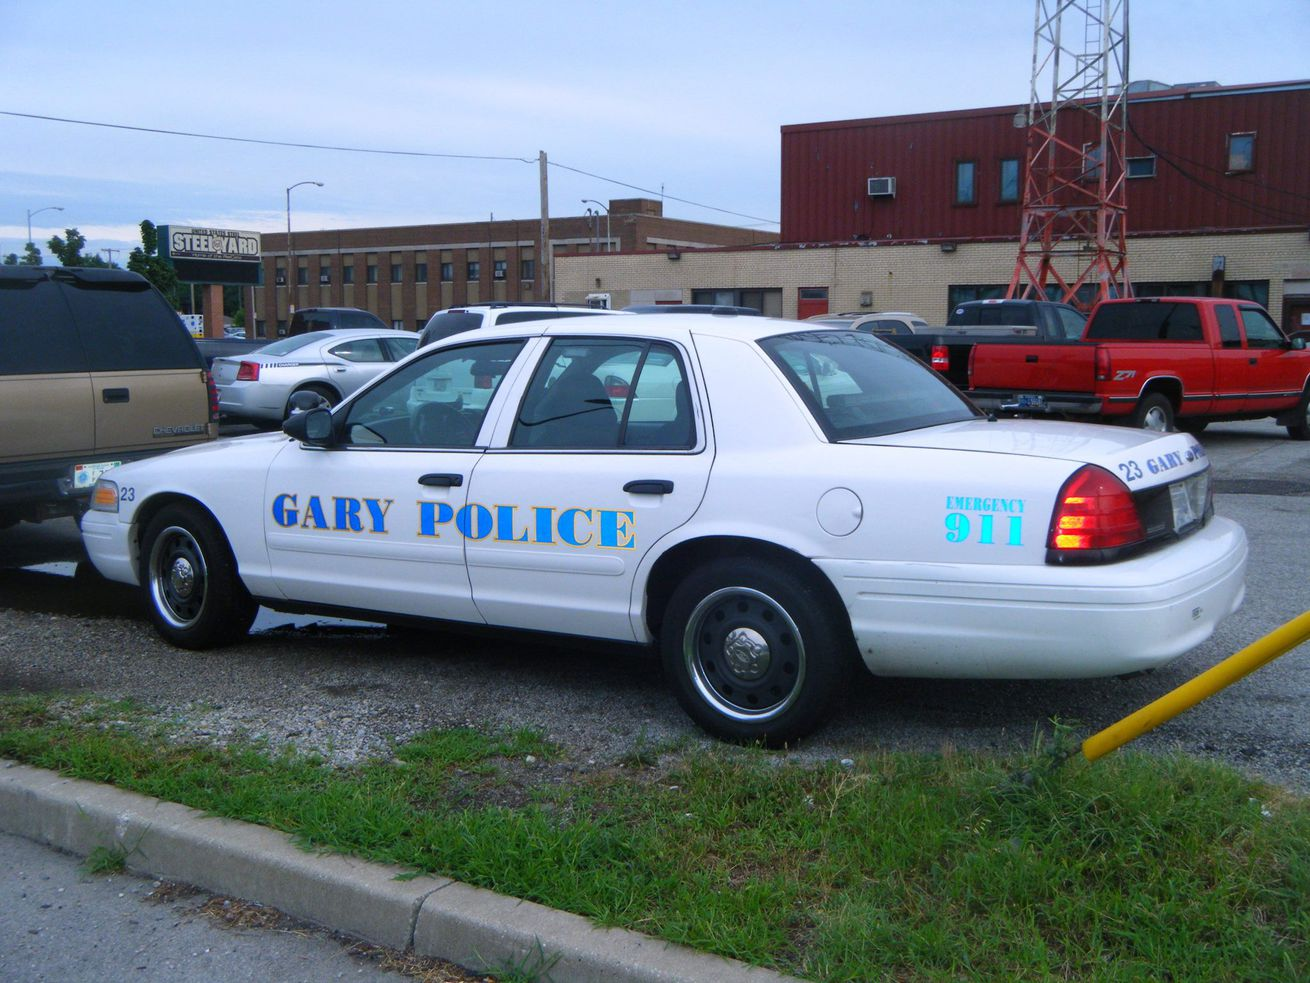 The Gary police officer who shot Rashad Cunningham will not face charges, Lake County Prosecutor Bernard Carter announced Nov. 19, 2020.